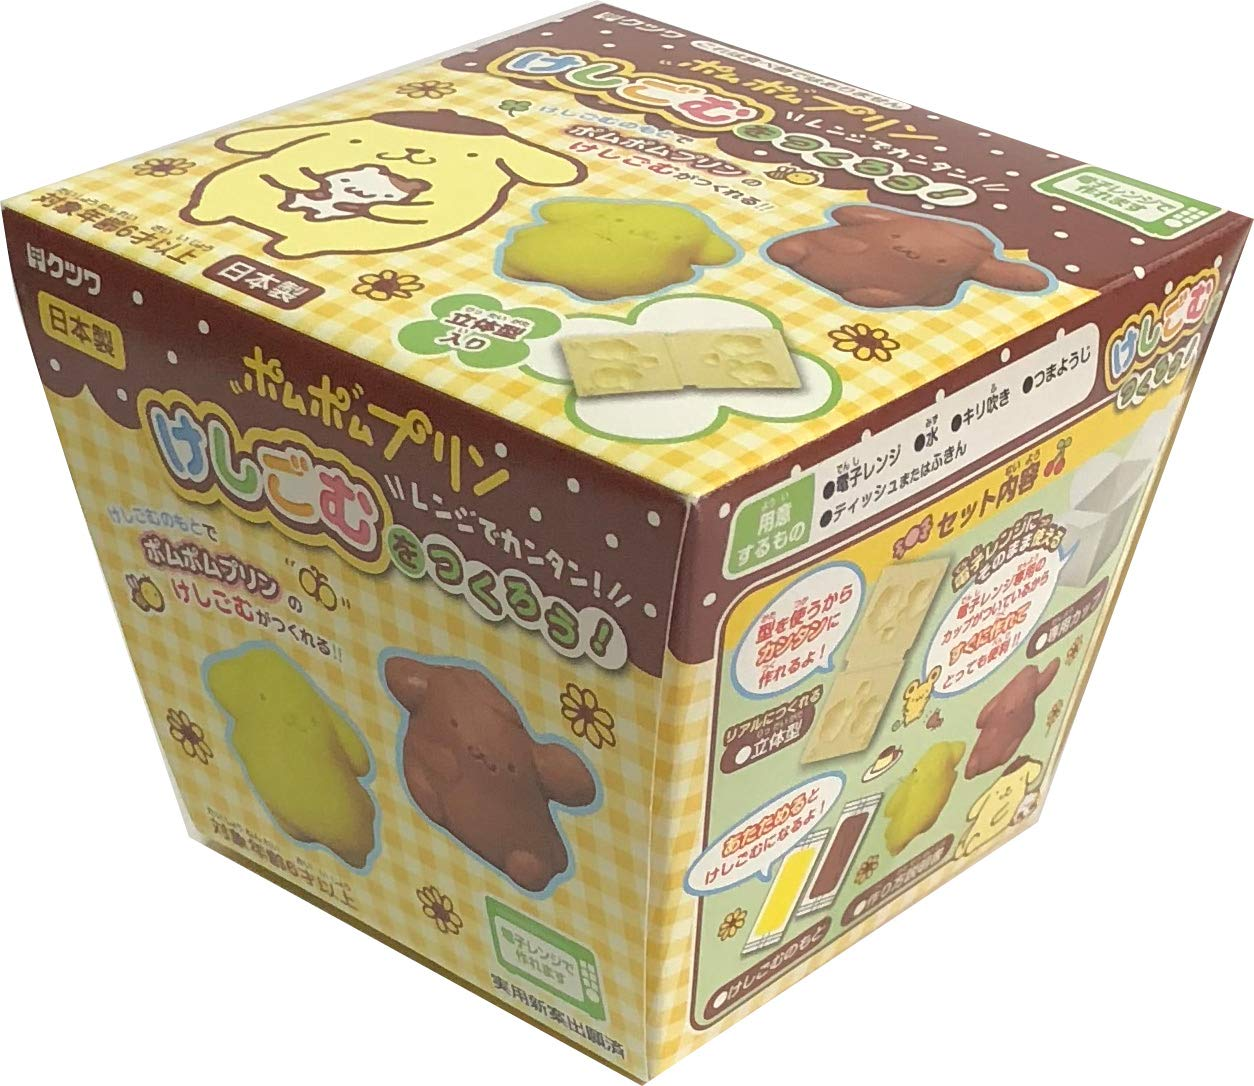 Sanrio Pom Pom Purin Eraser Made Making Microwave Create kit by Kutsuwa (Image #1)